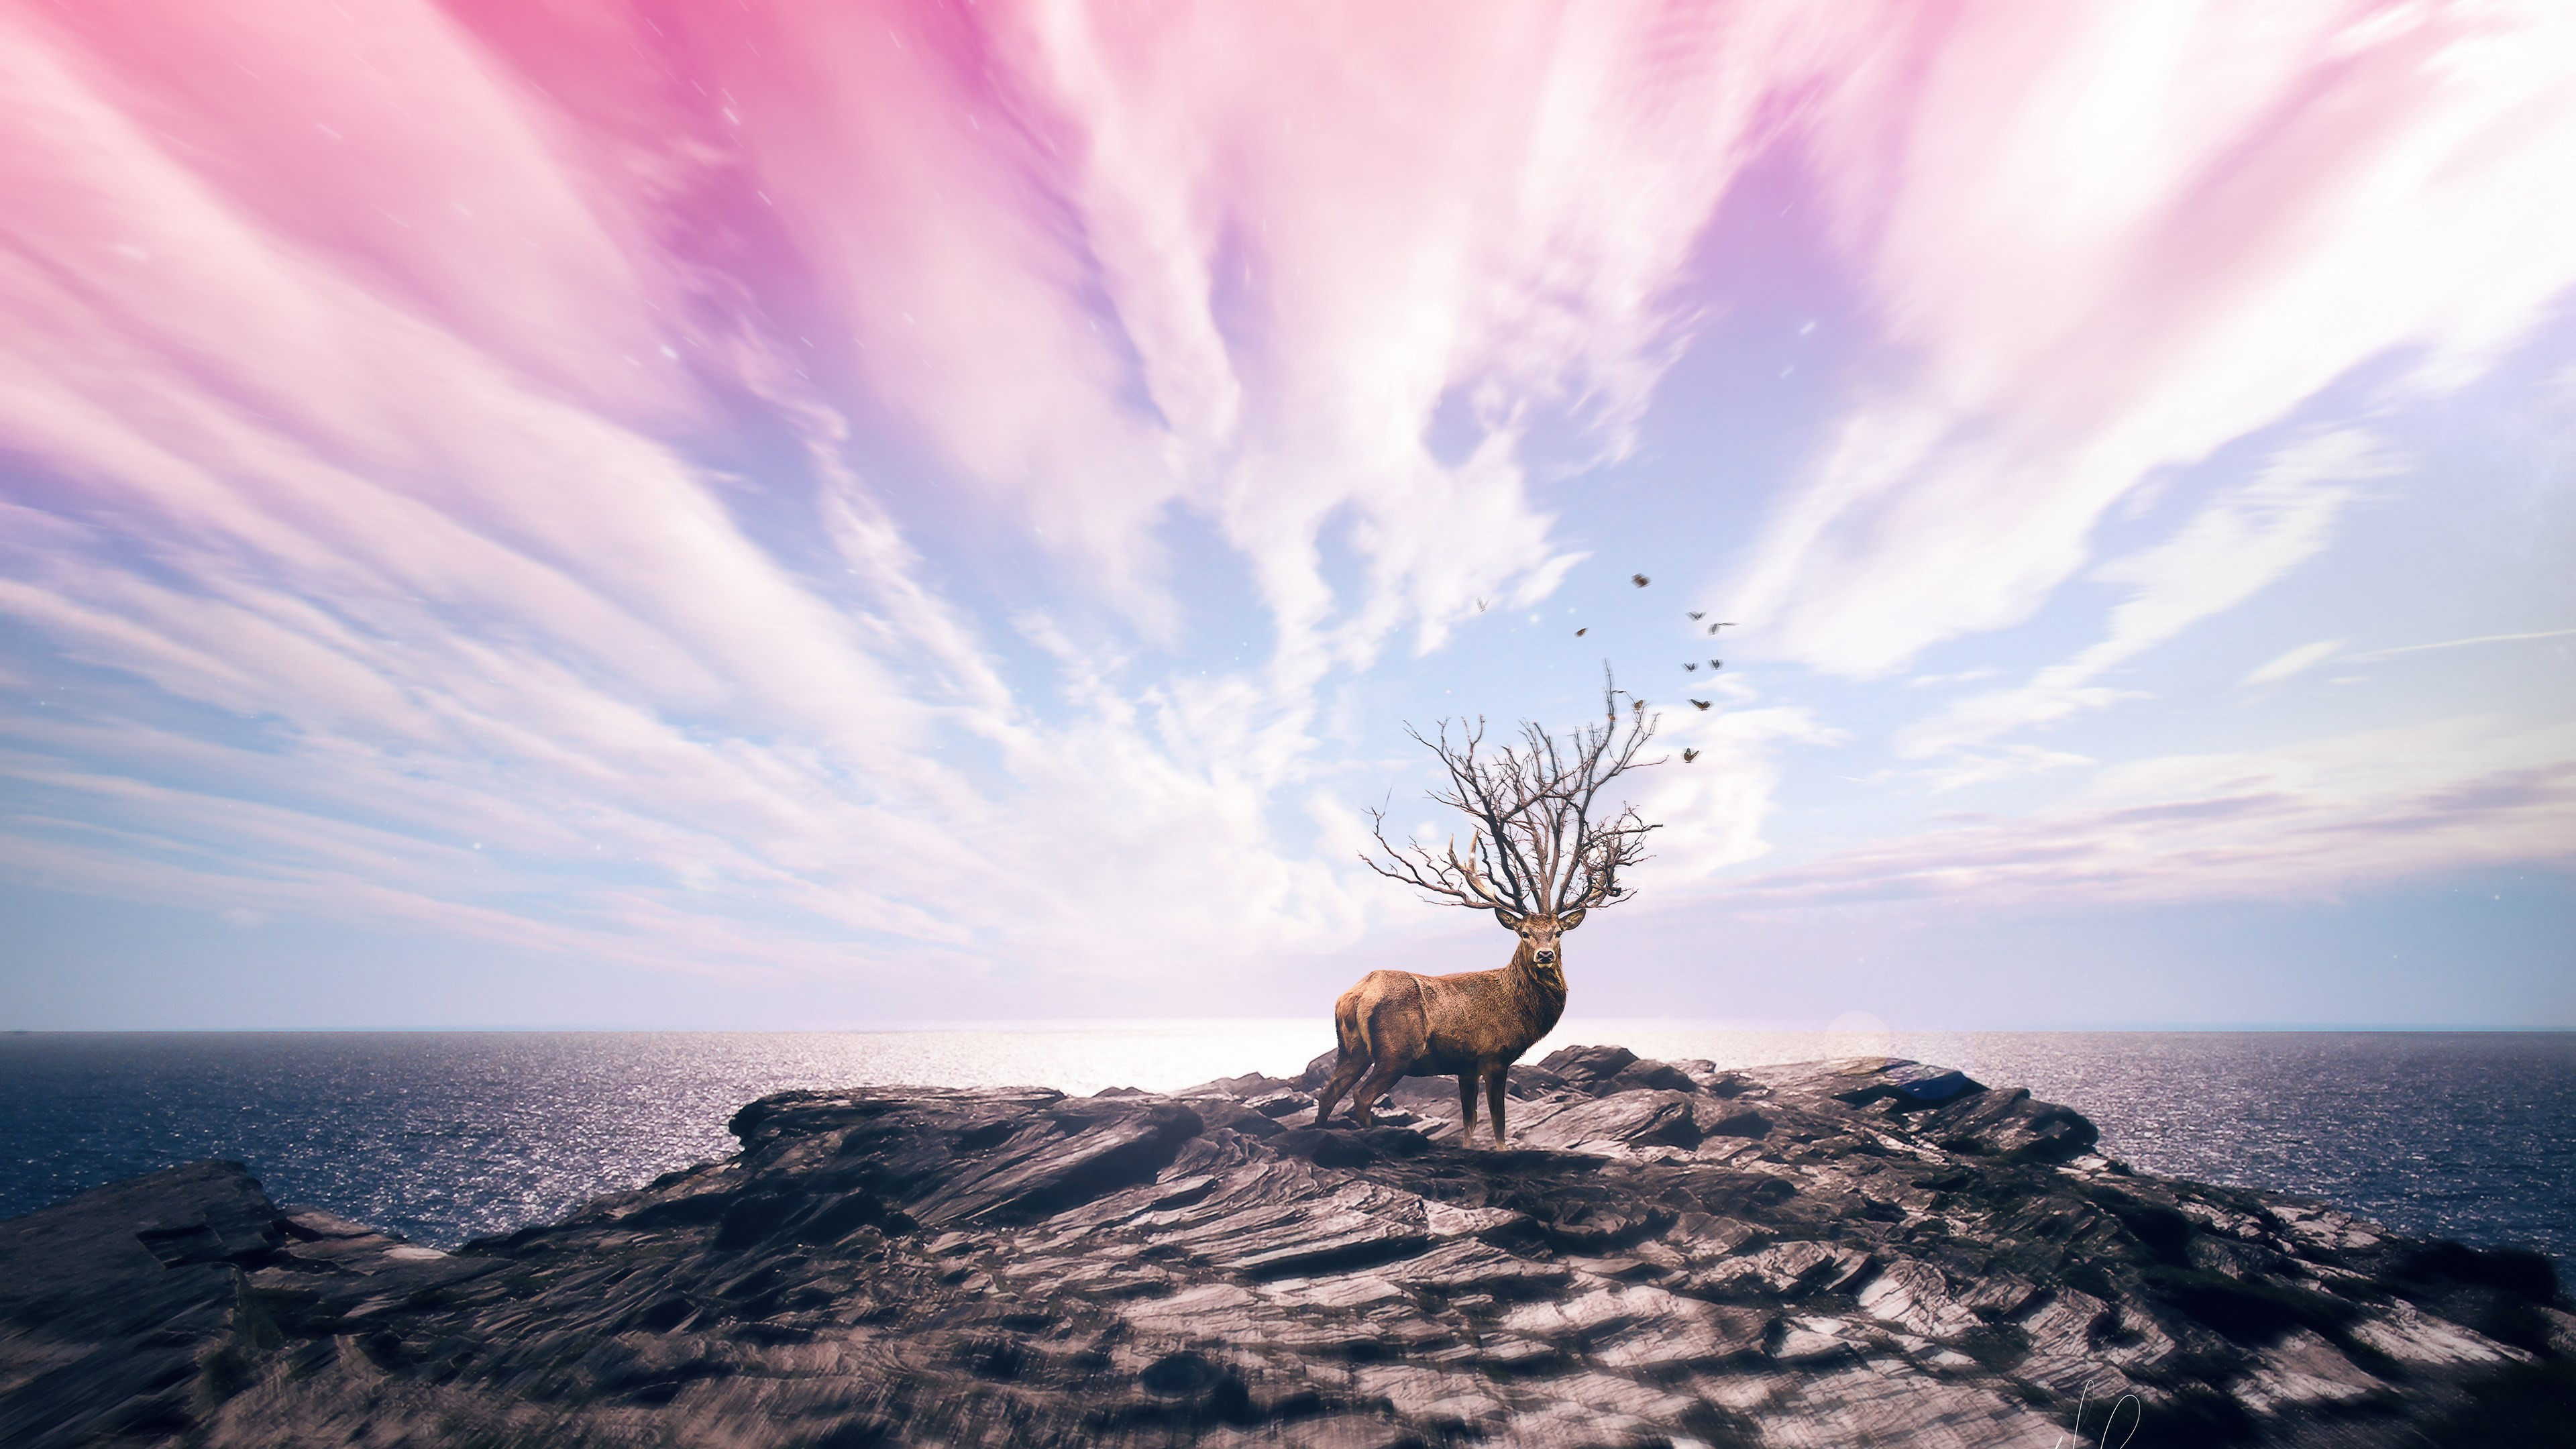 Digital art with deer wallpaper 3840x2160